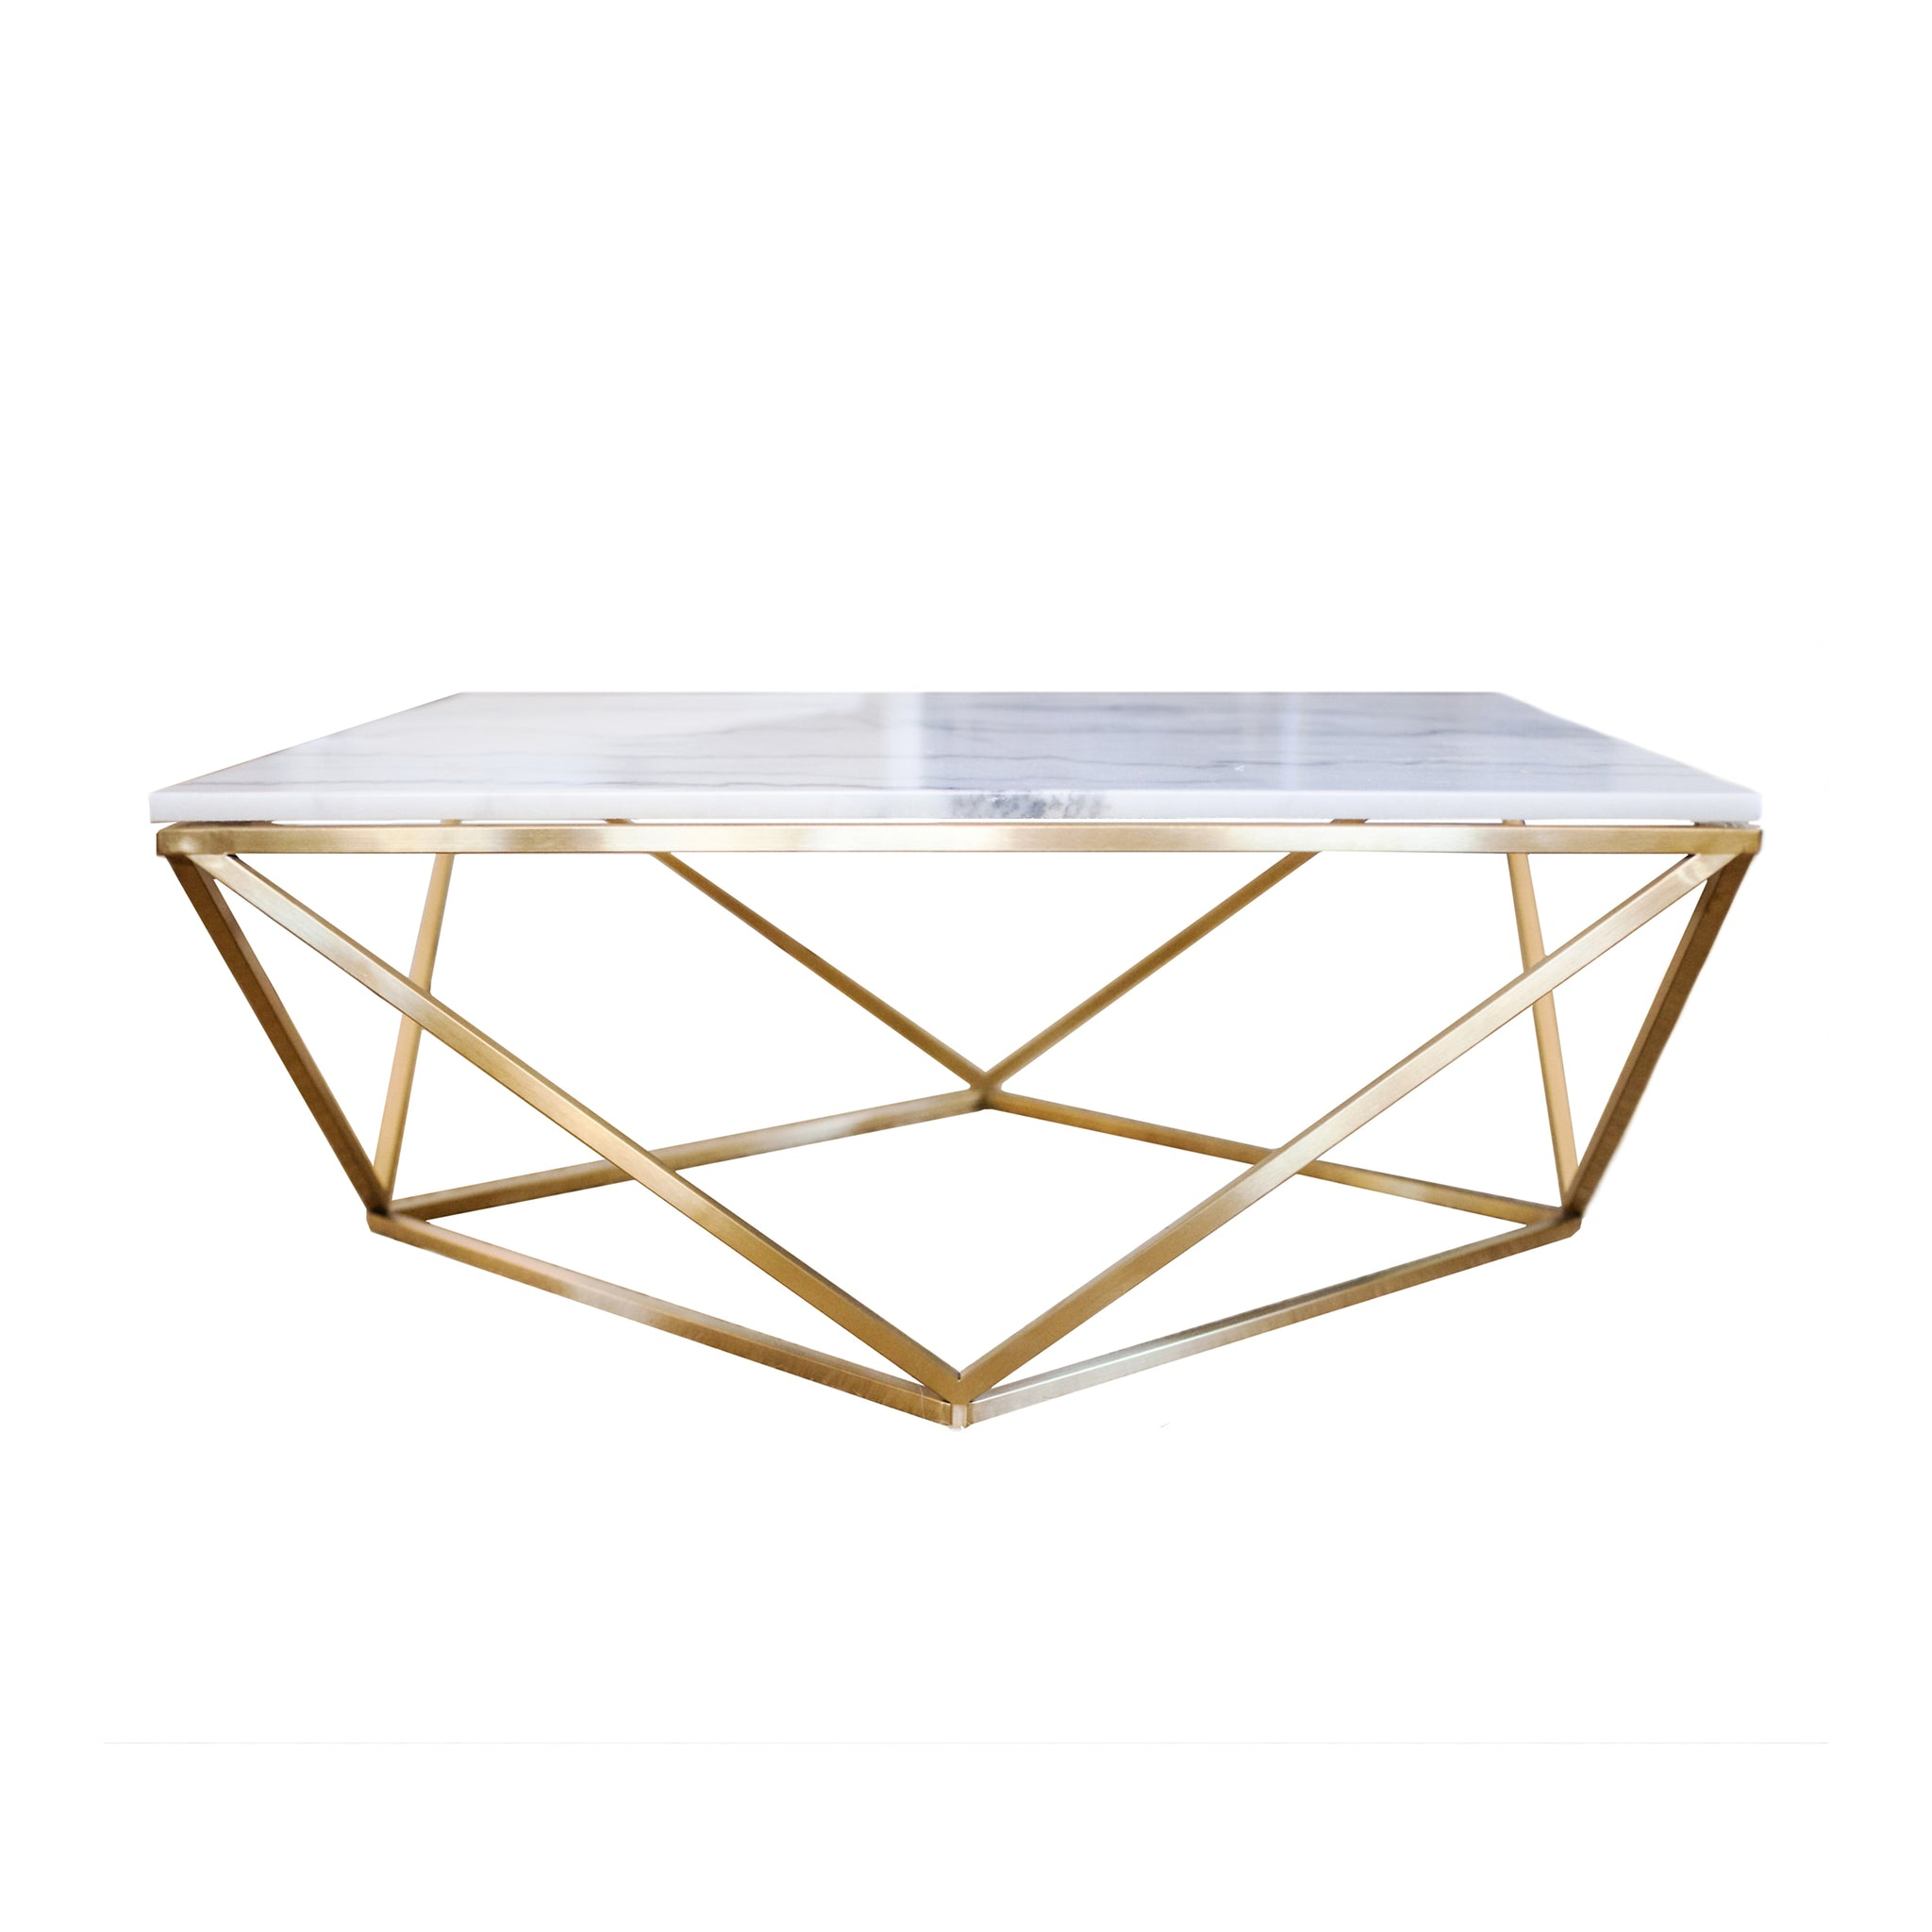 Alexander Cocktail table in White marble and gold-brushed stainless steel